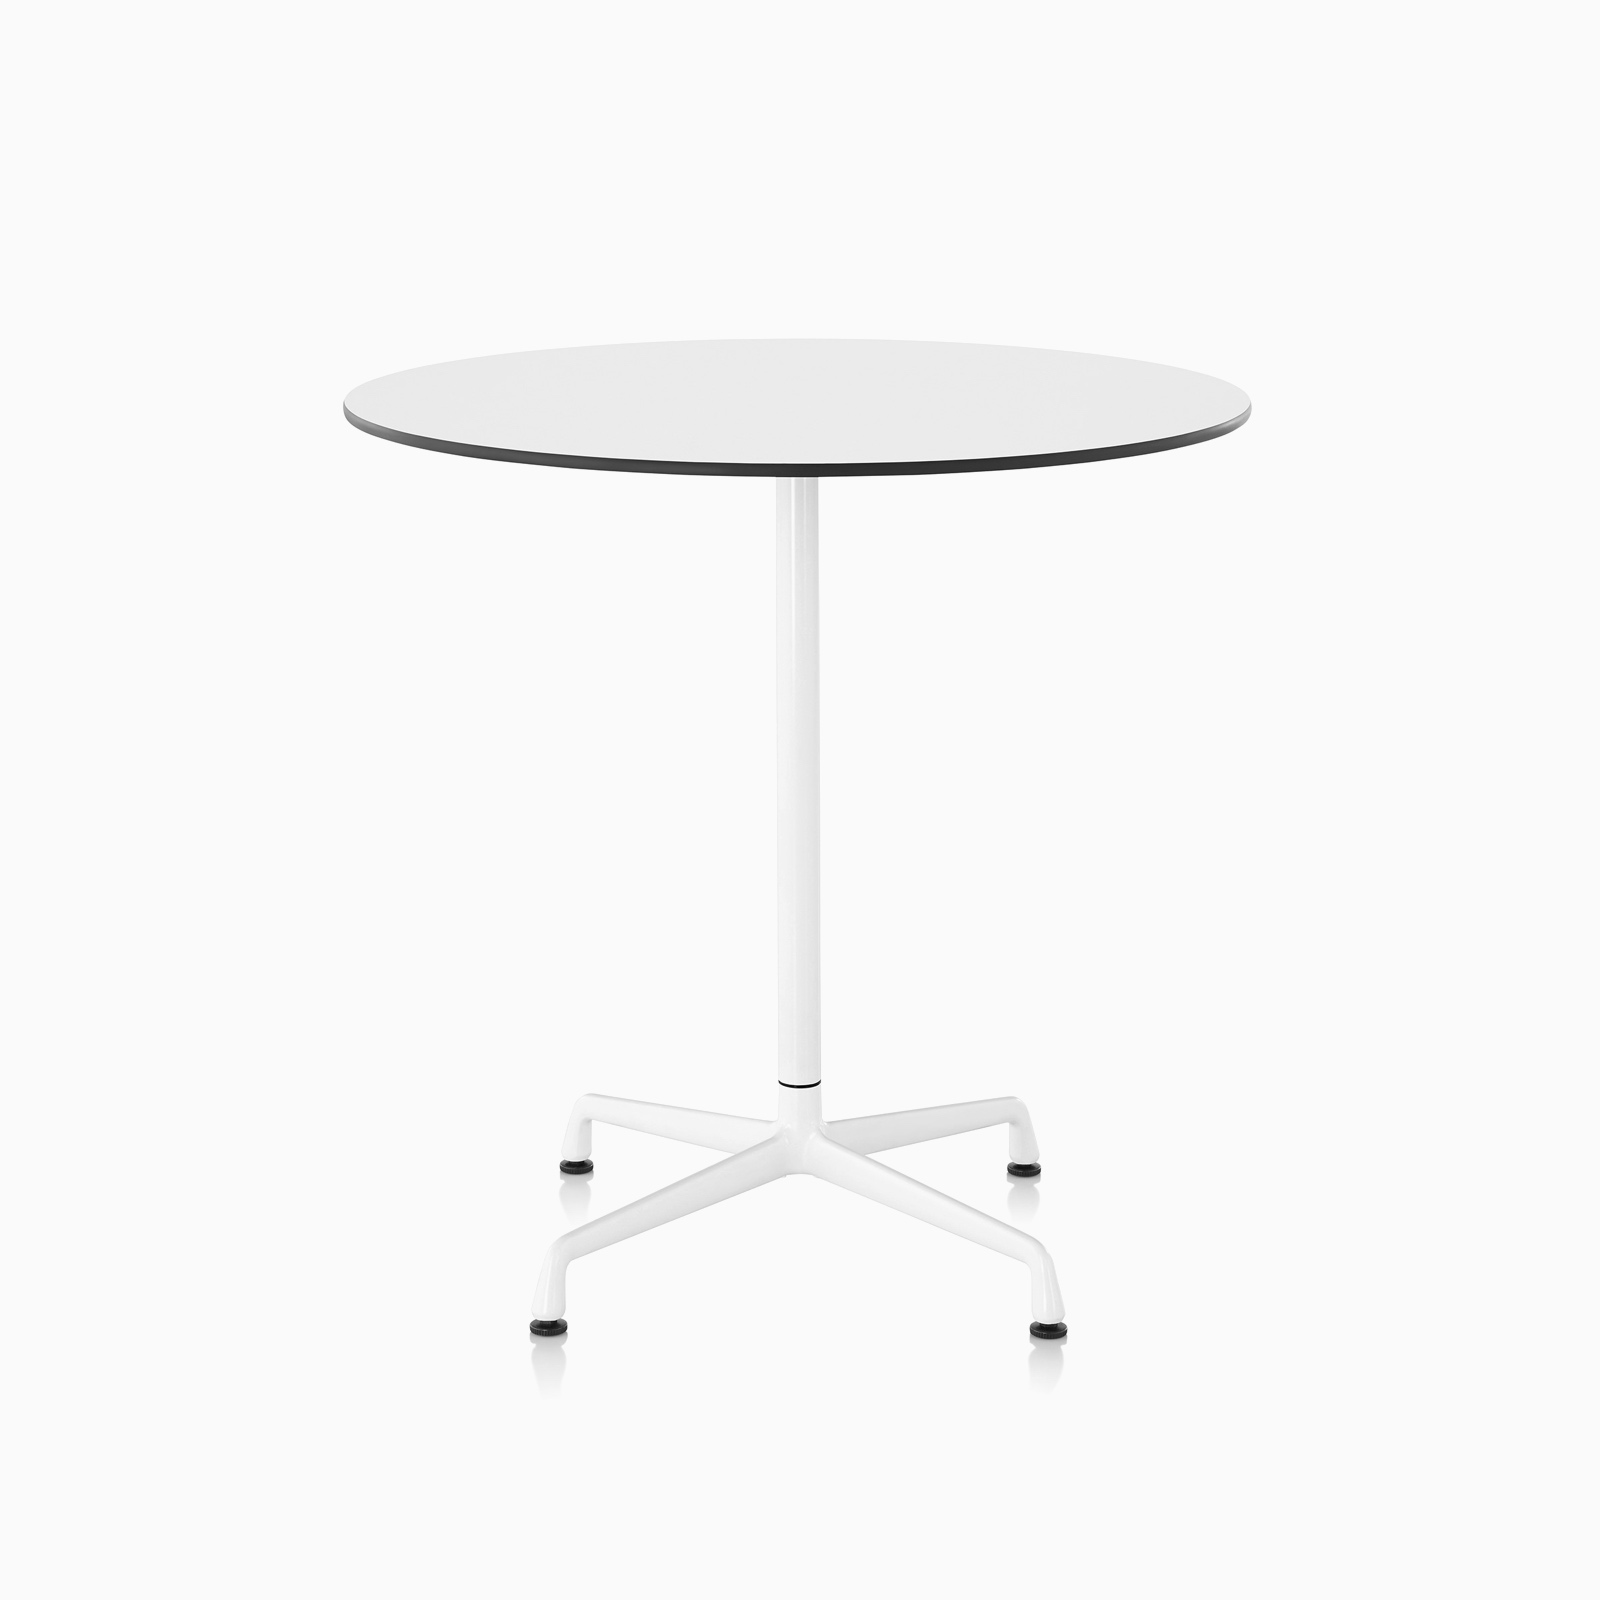 An Eames standing-height table featuring a white back-painted glass top, white column, and polished aluminum base.